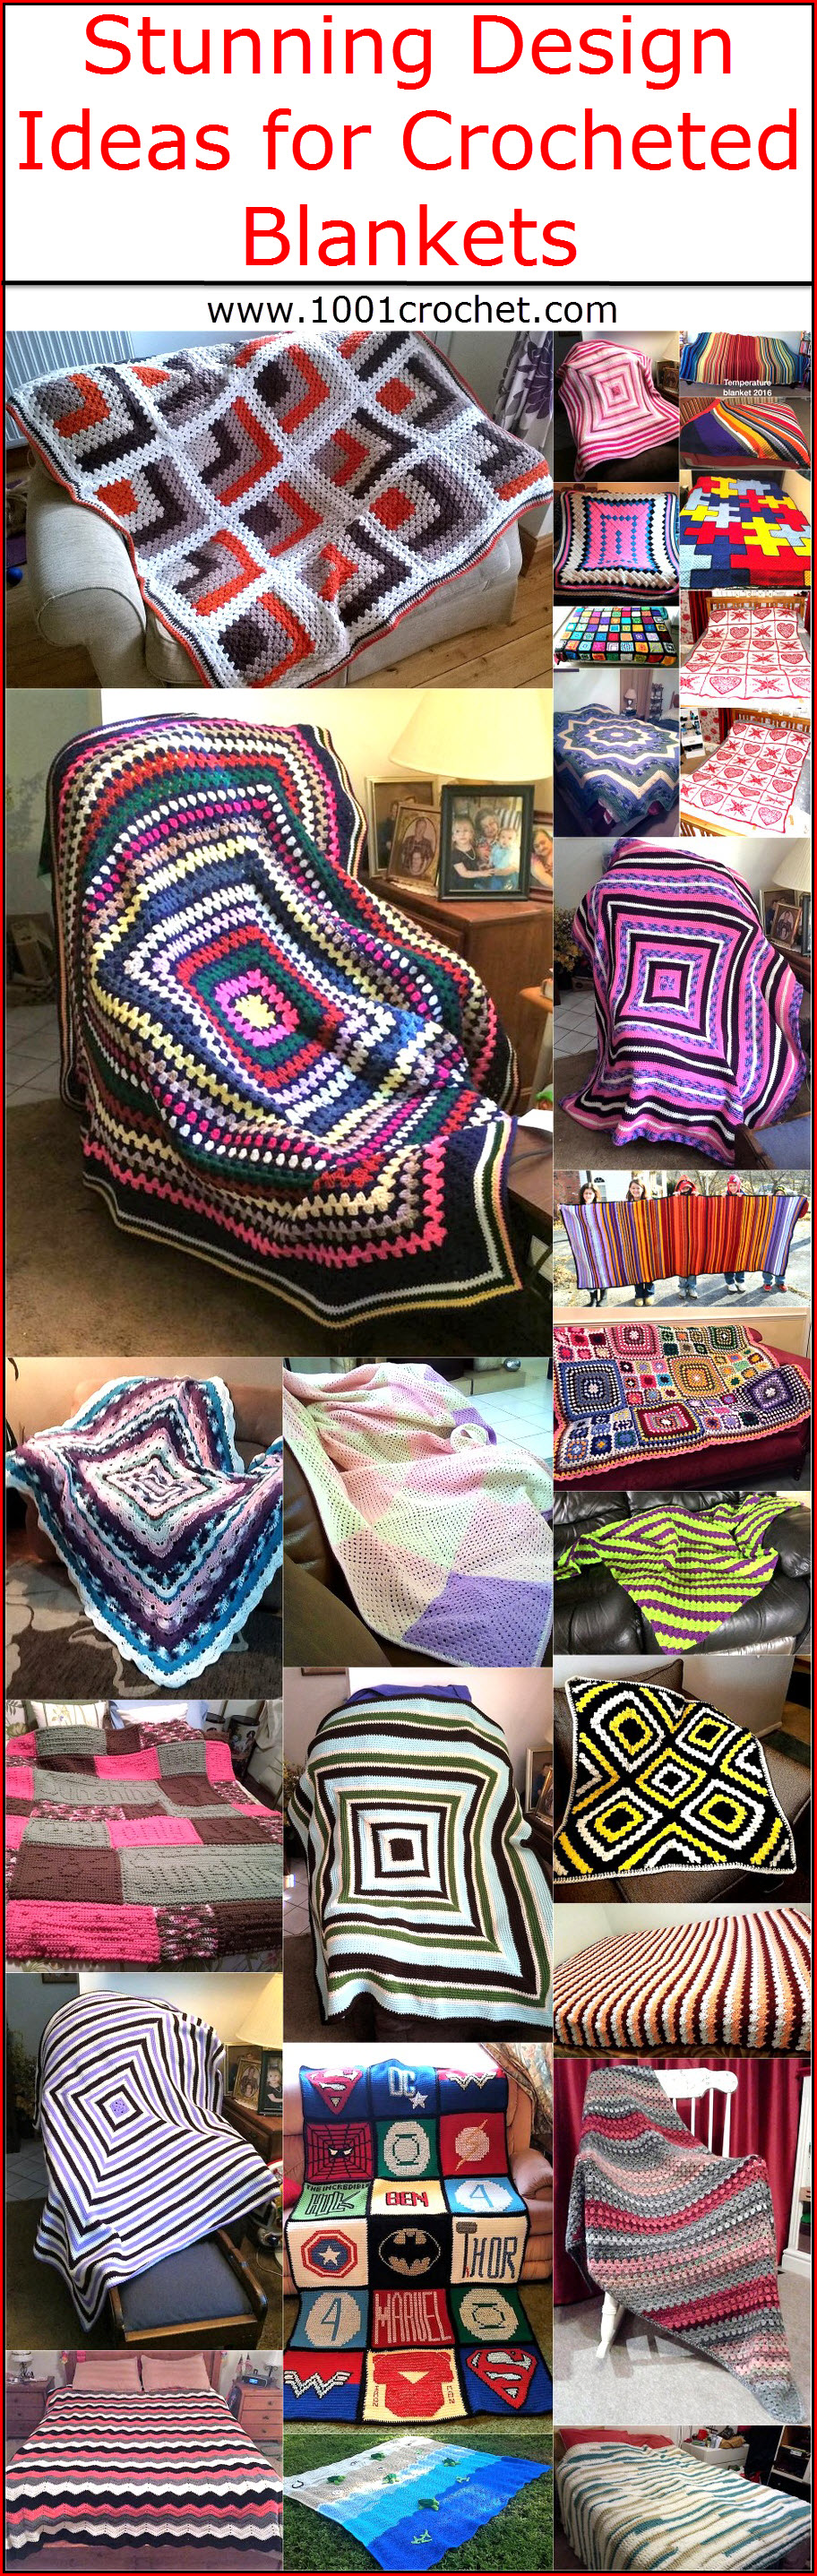 Stunning Design Ideas for Crocheted Blankets